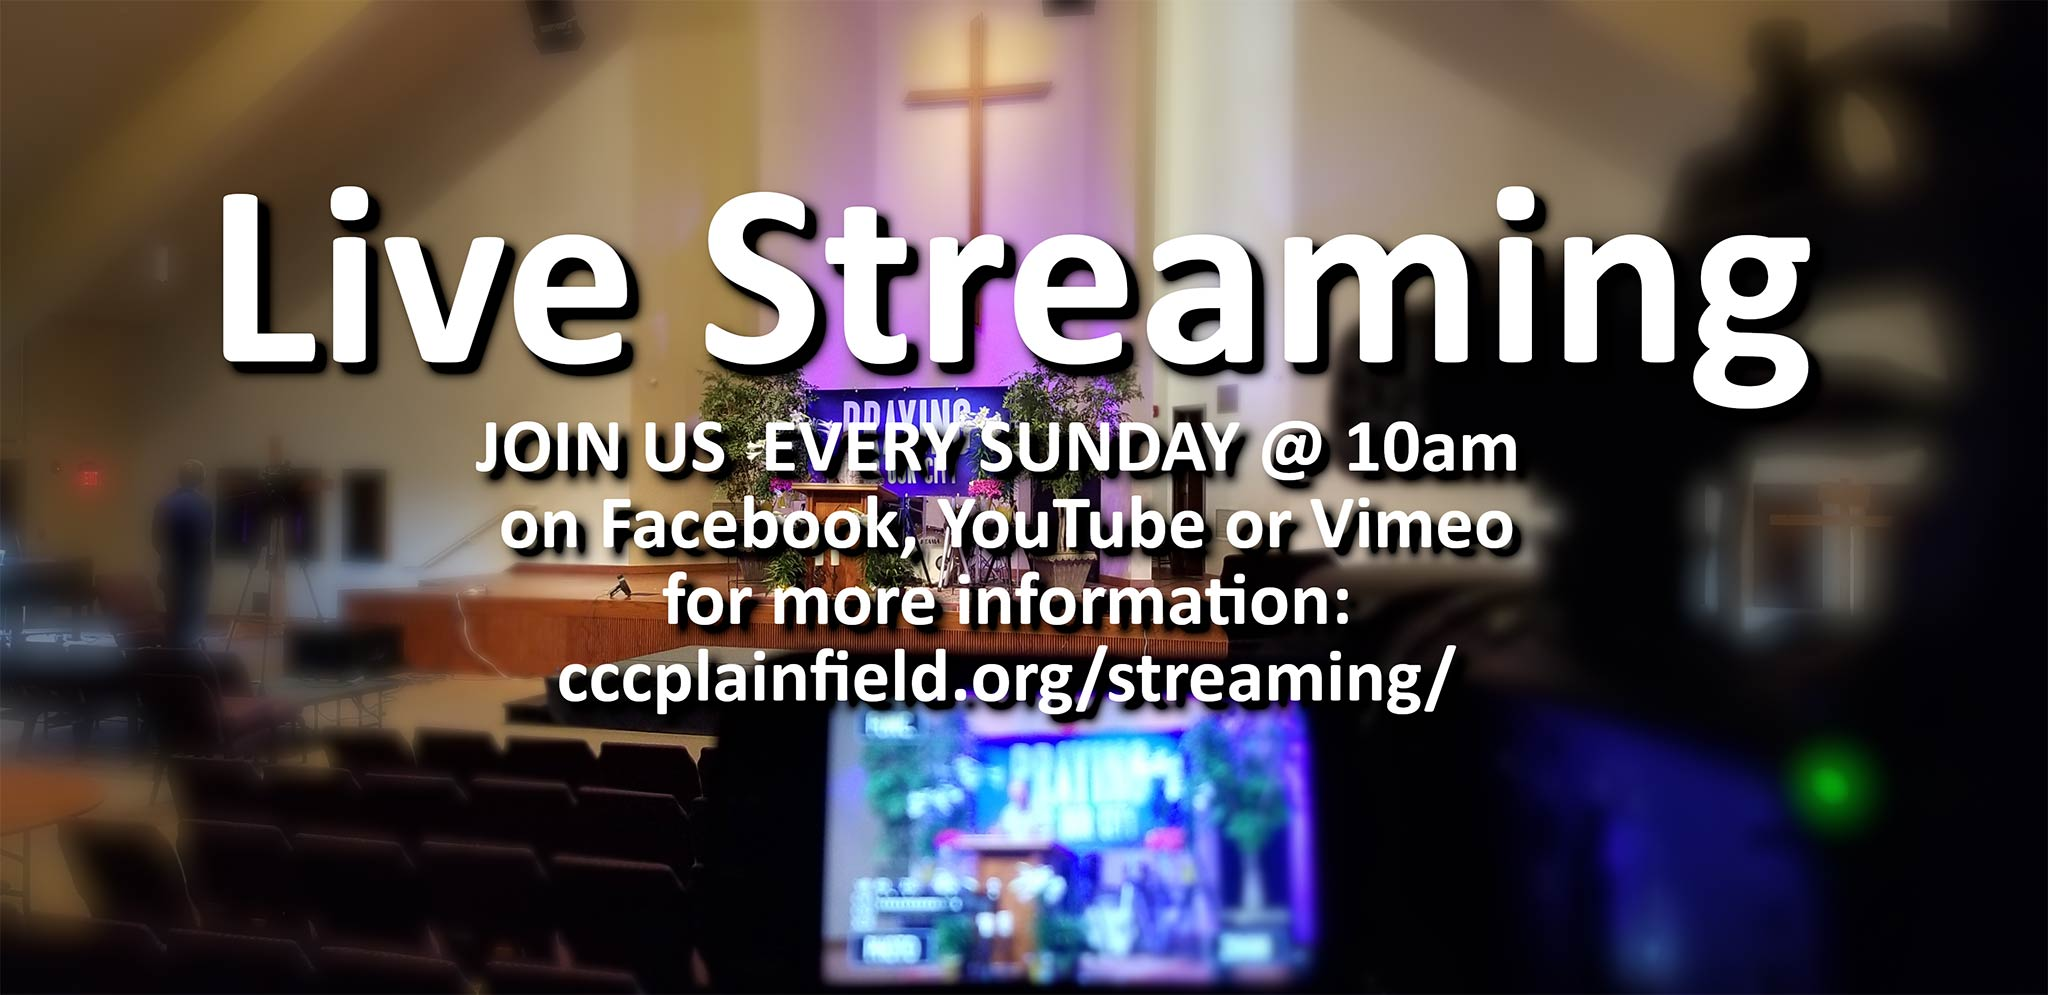 Live streaming - join us every Sunday at 10am on Facebook, Youtube, or Vimeo